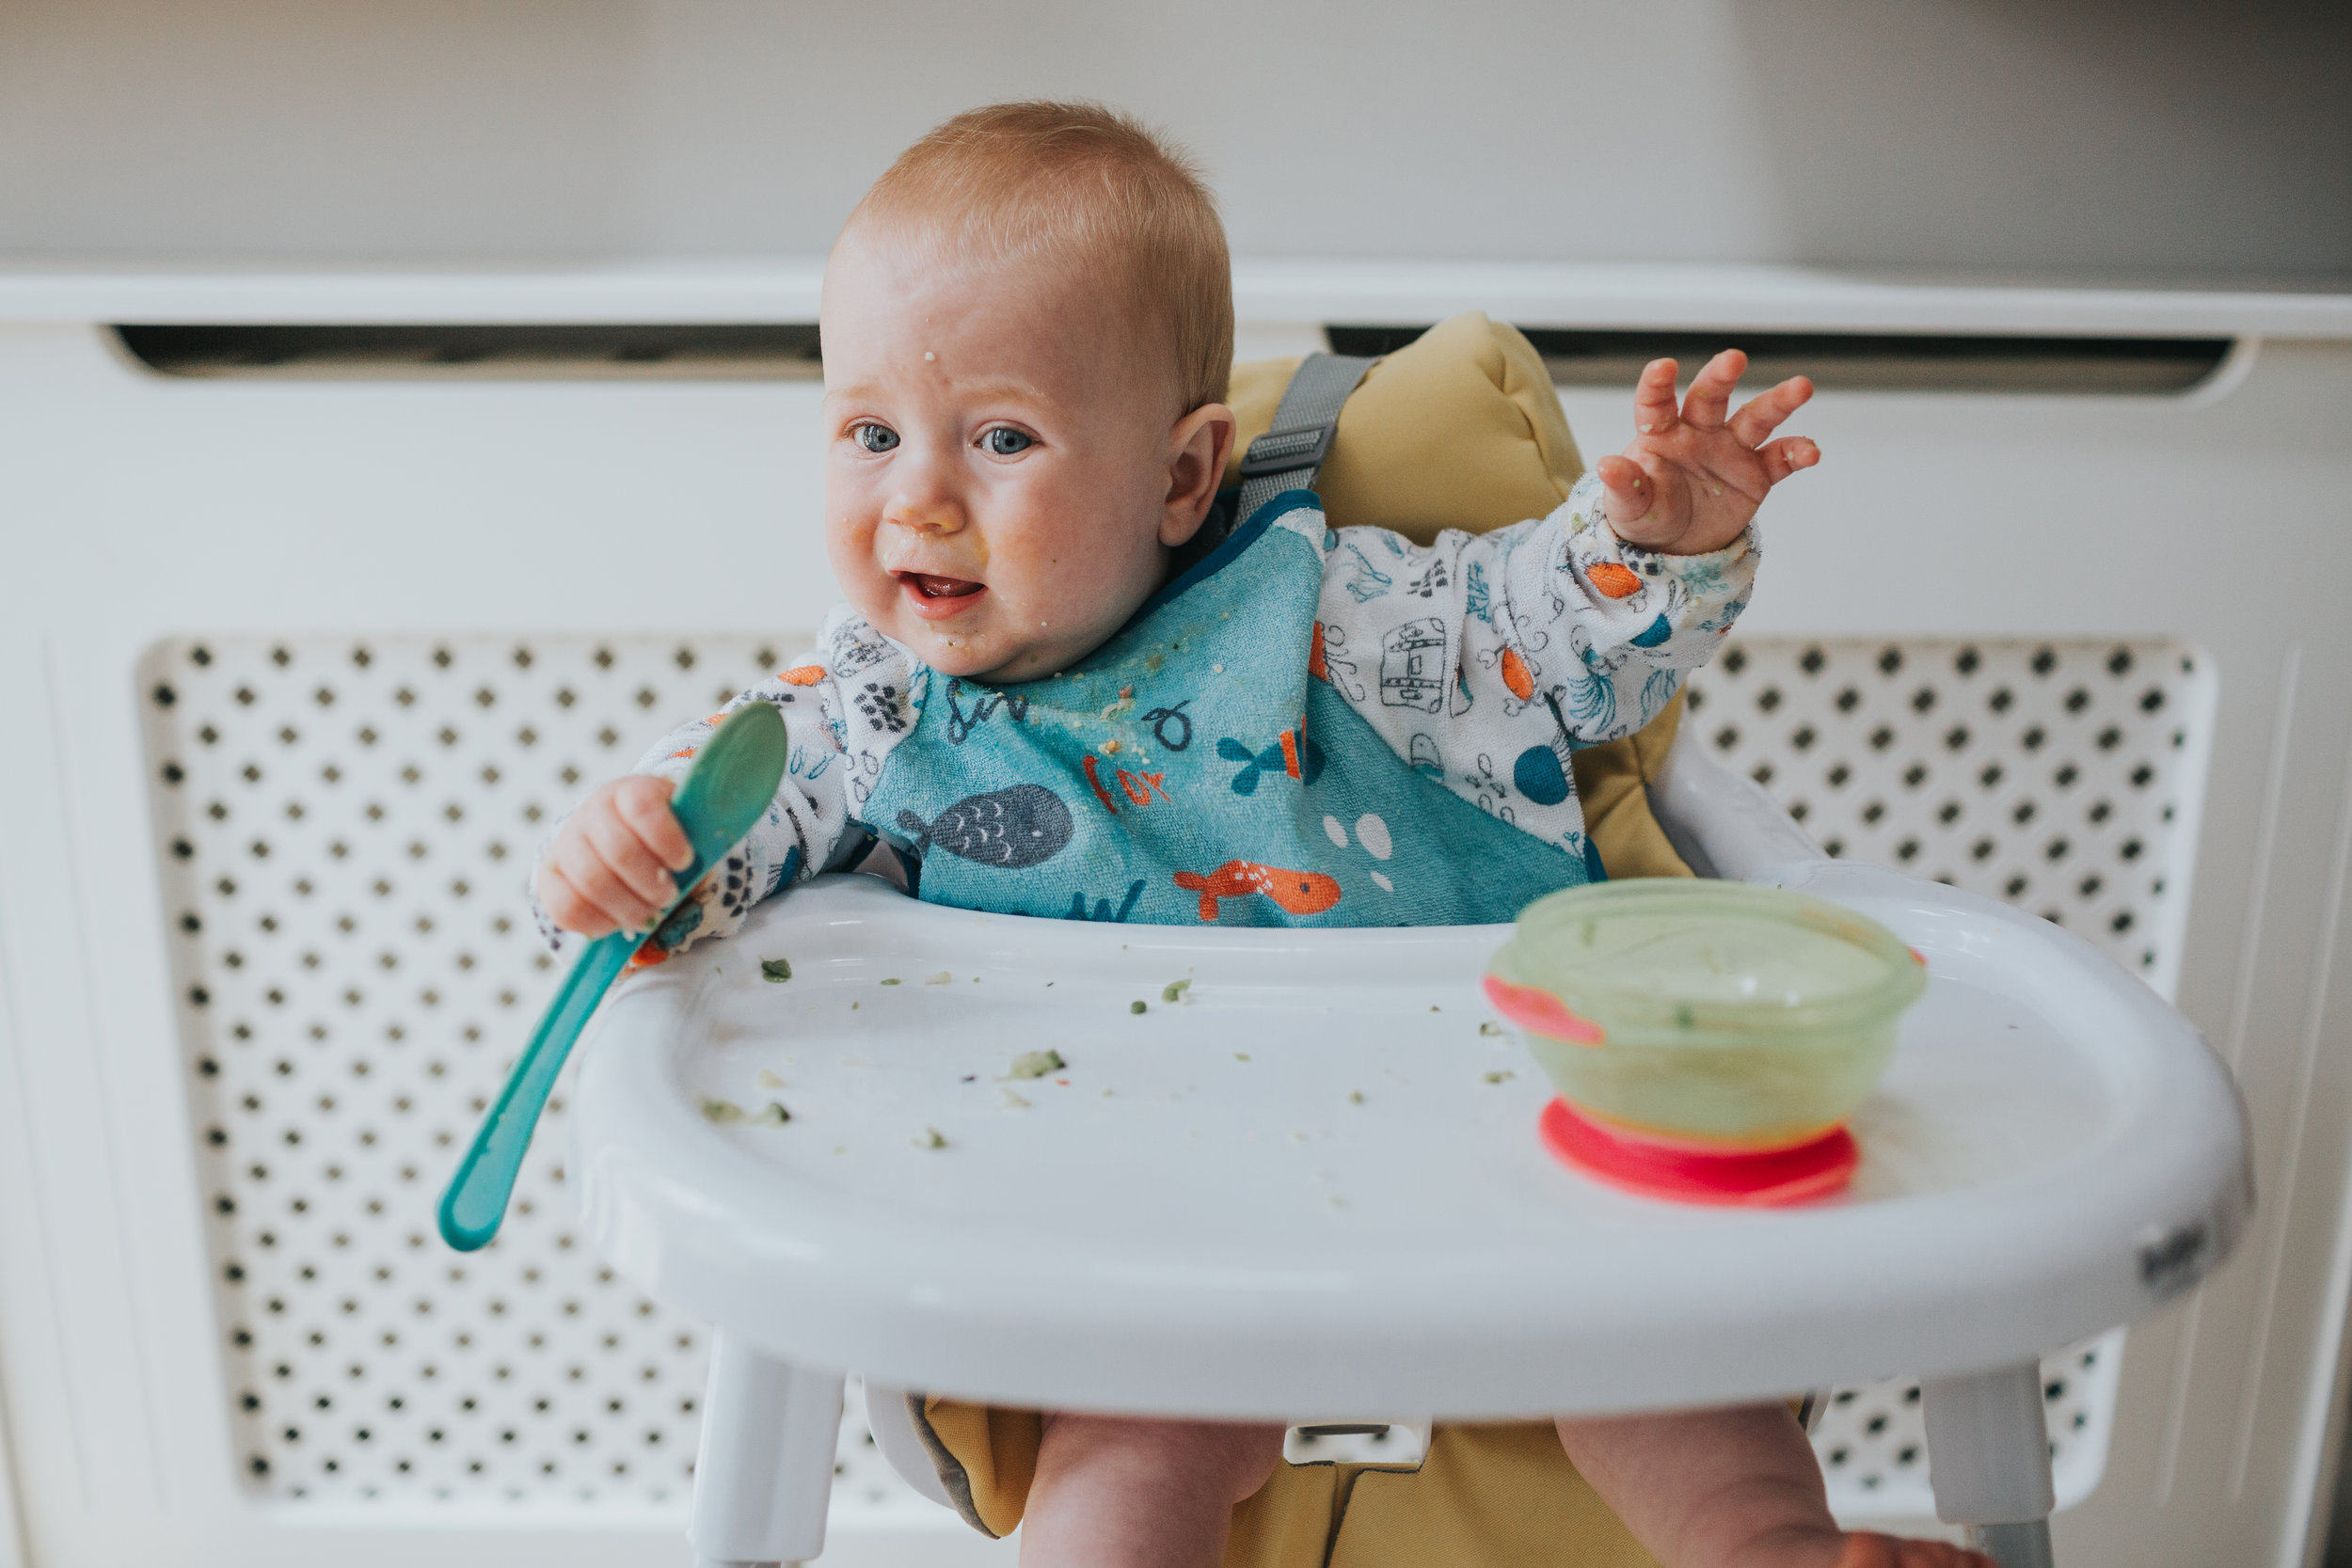 Baby uses his spoon as a microphone.